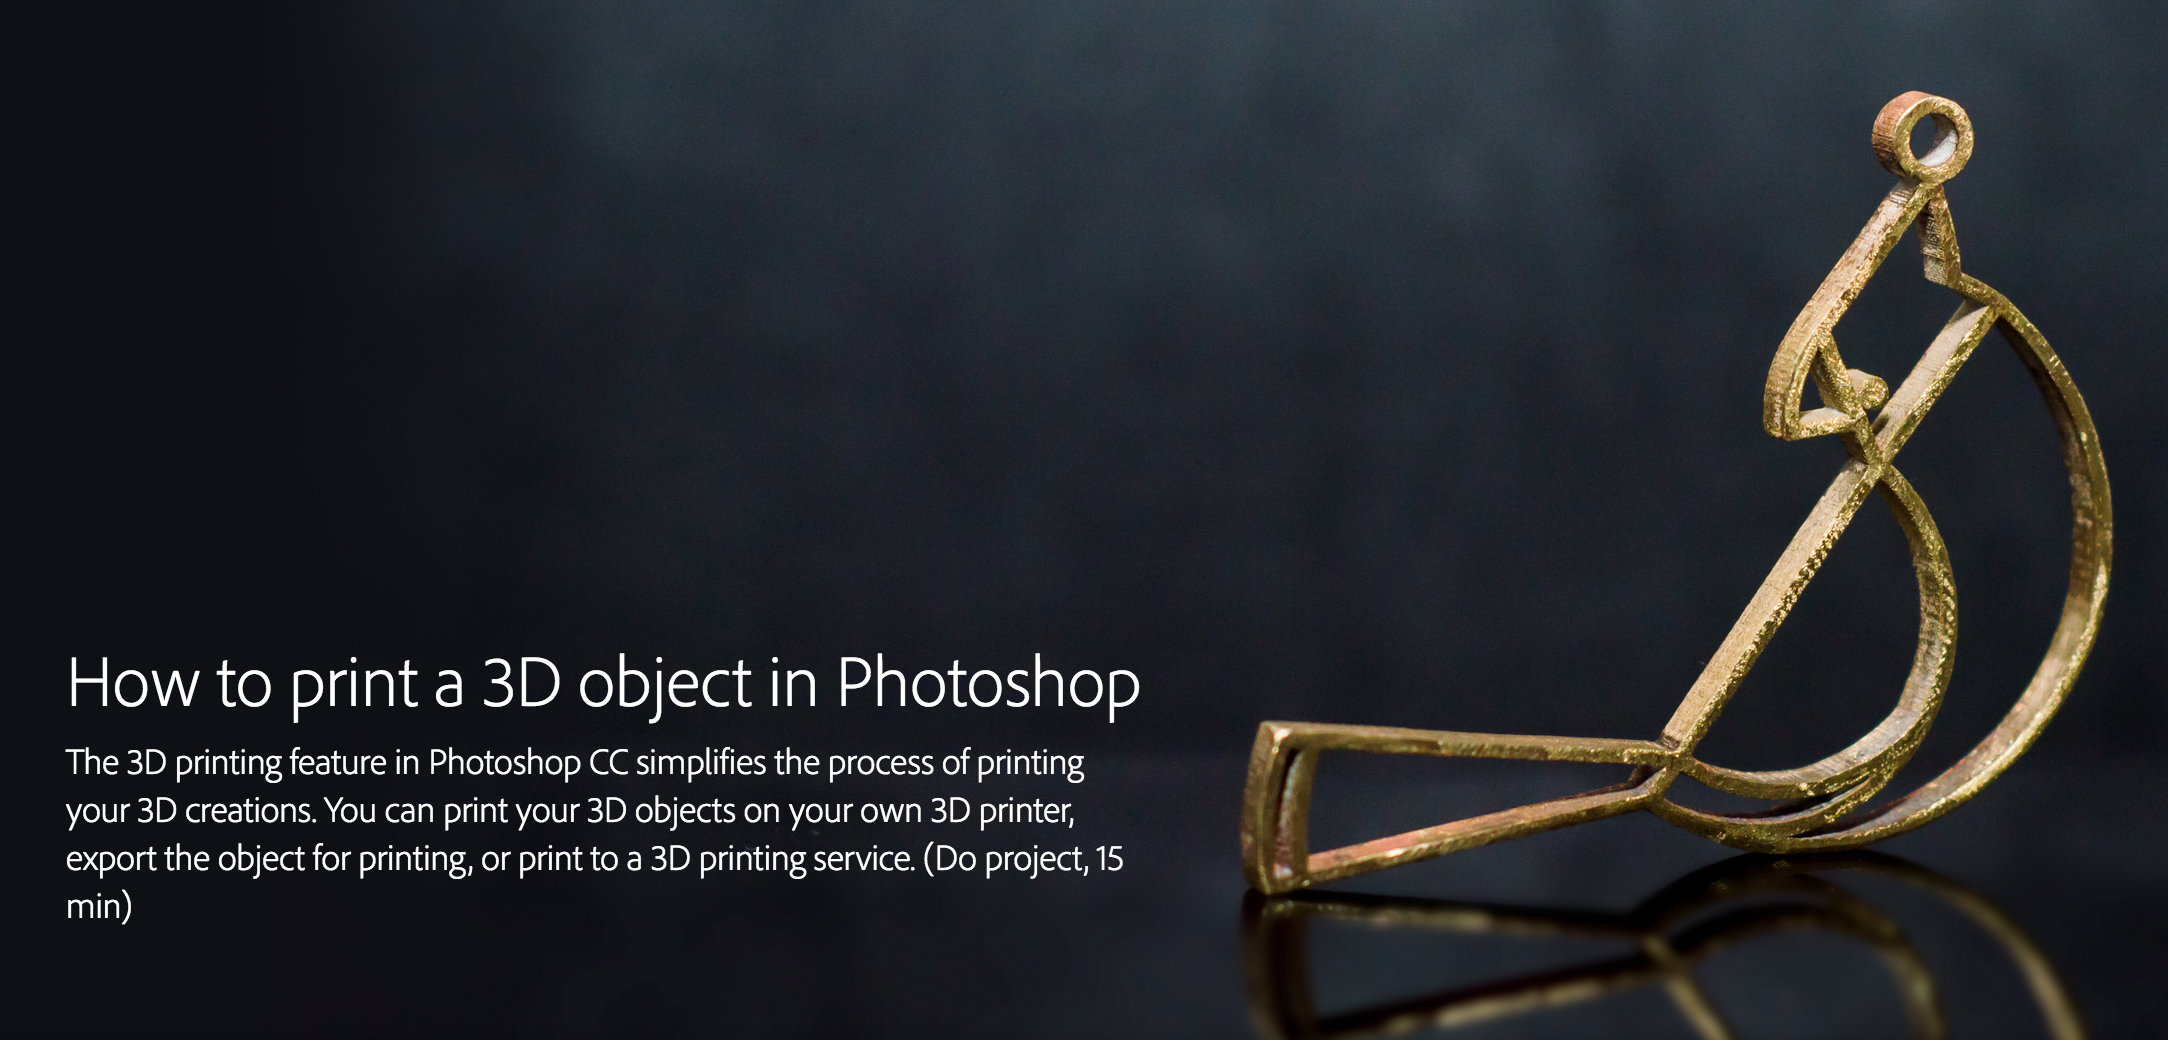 Photoshop Creative Cloud Tutorial on 3D Printing